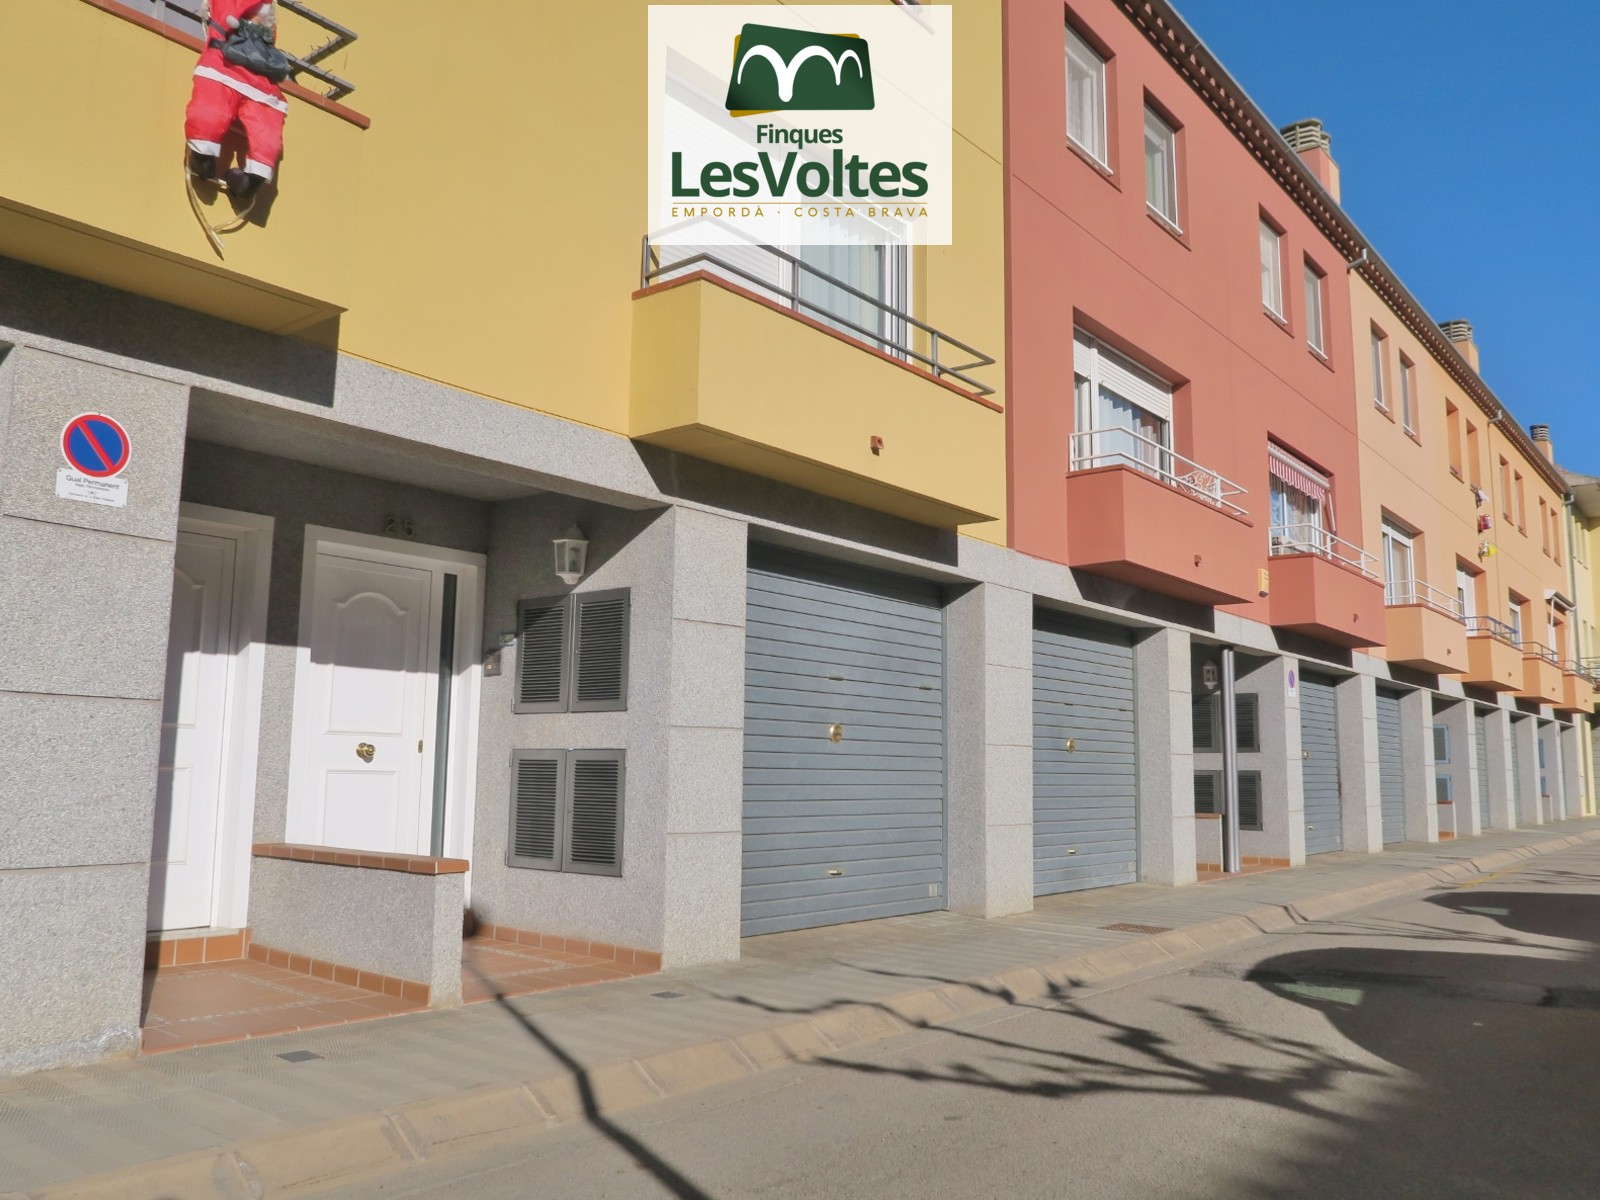 HOUSE FOR SALE IN LA BISBAL D'EMPORDÀ OF 164 M² WITH PATIO OF 40 M²